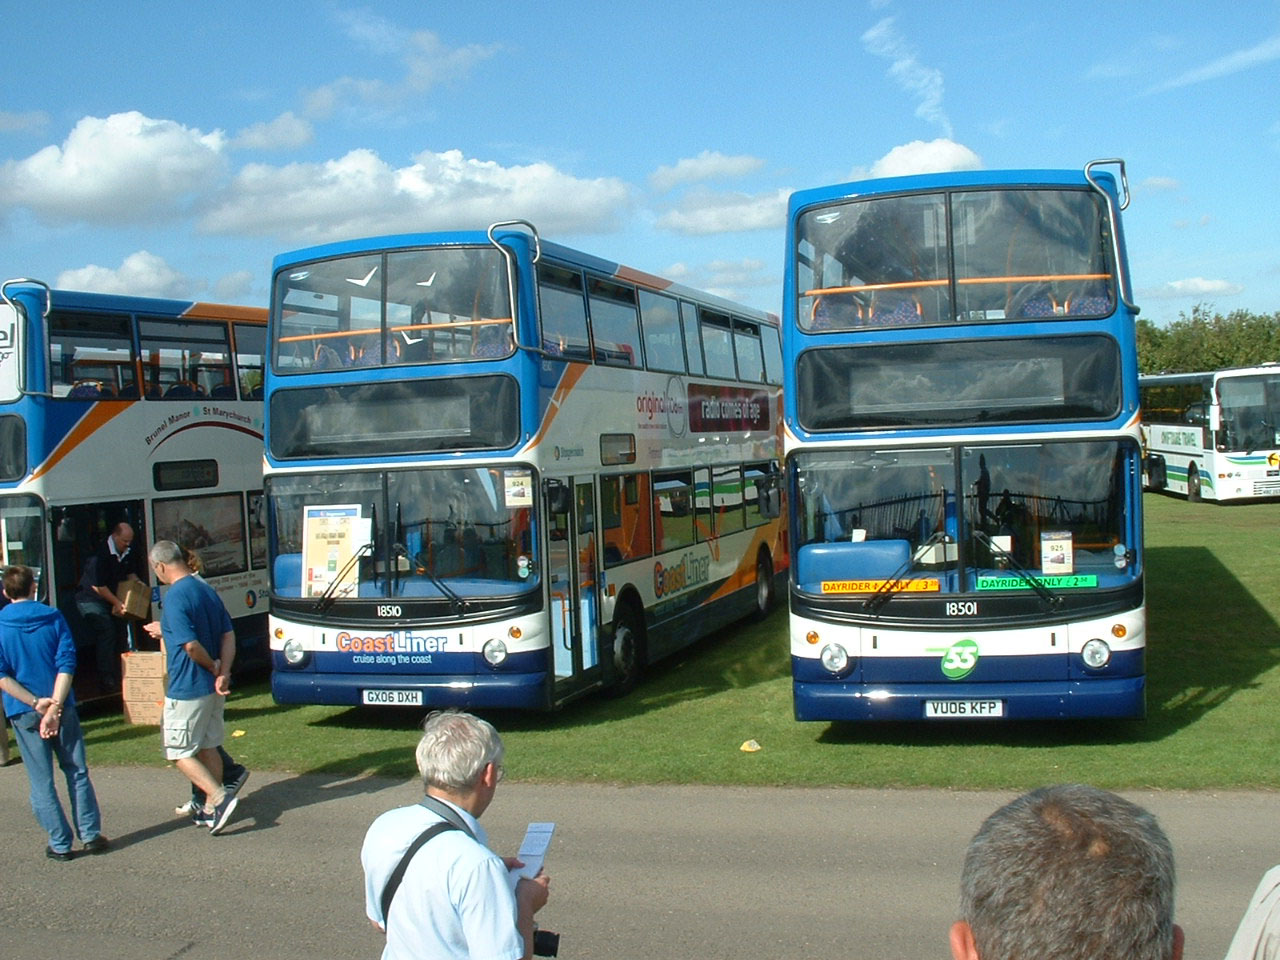 Alexander Dennis Tridents Are The Order Of Day And On Left Is 18510 GX06DXH With Reintroduced Route Branding For 700 Coastliner Service